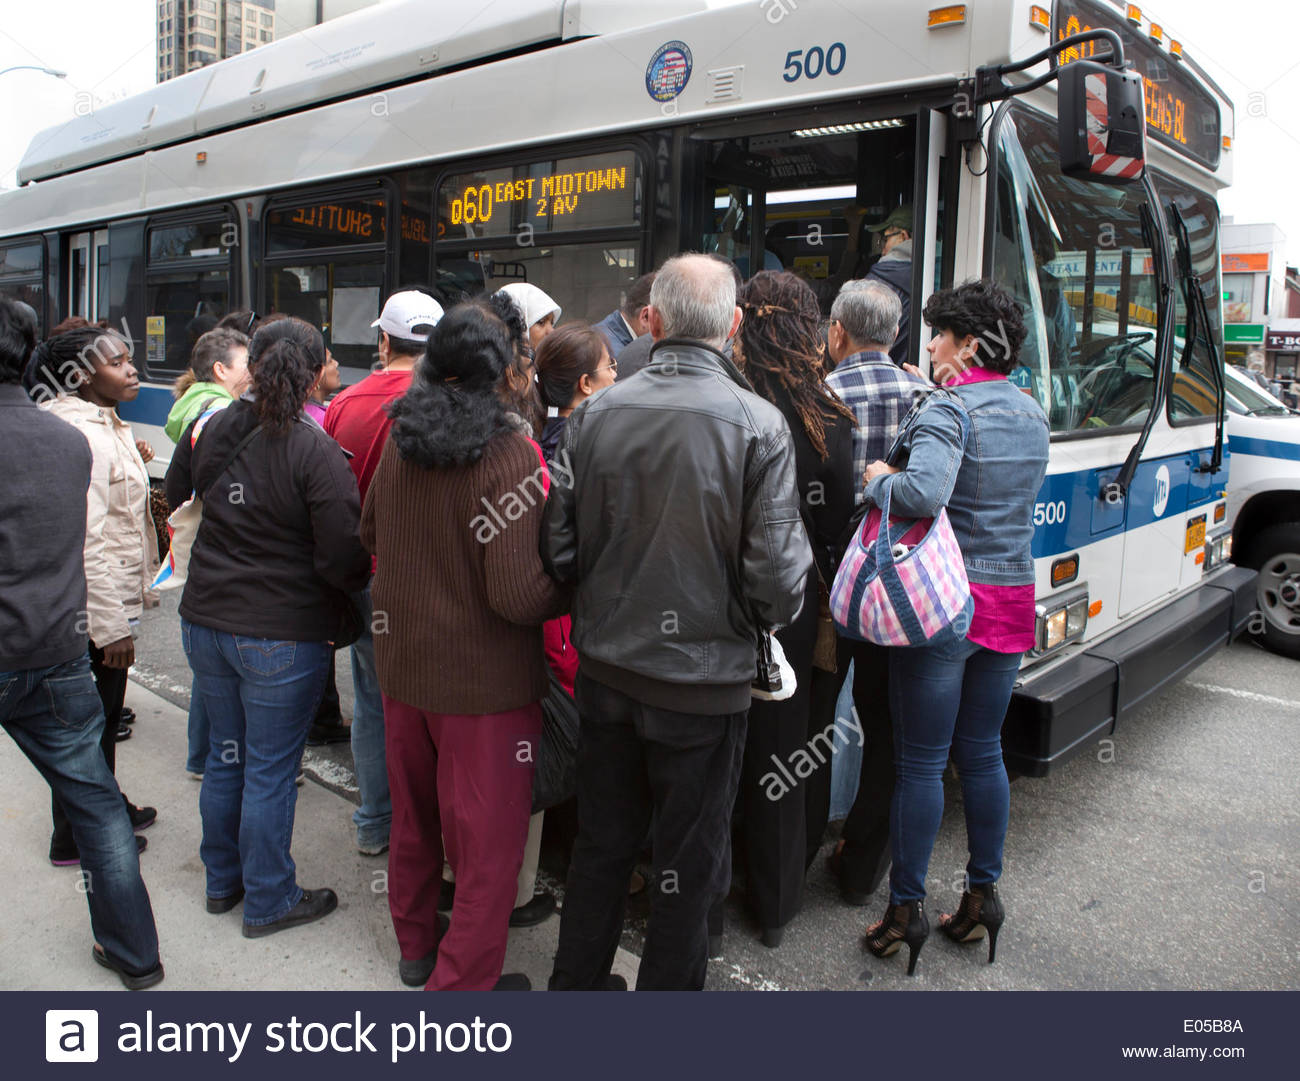 queens new york usa may 02 2014 afternoon rush hour after f stock photo 68960090 alamy. Black Bedroom Furniture Sets. Home Design Ideas